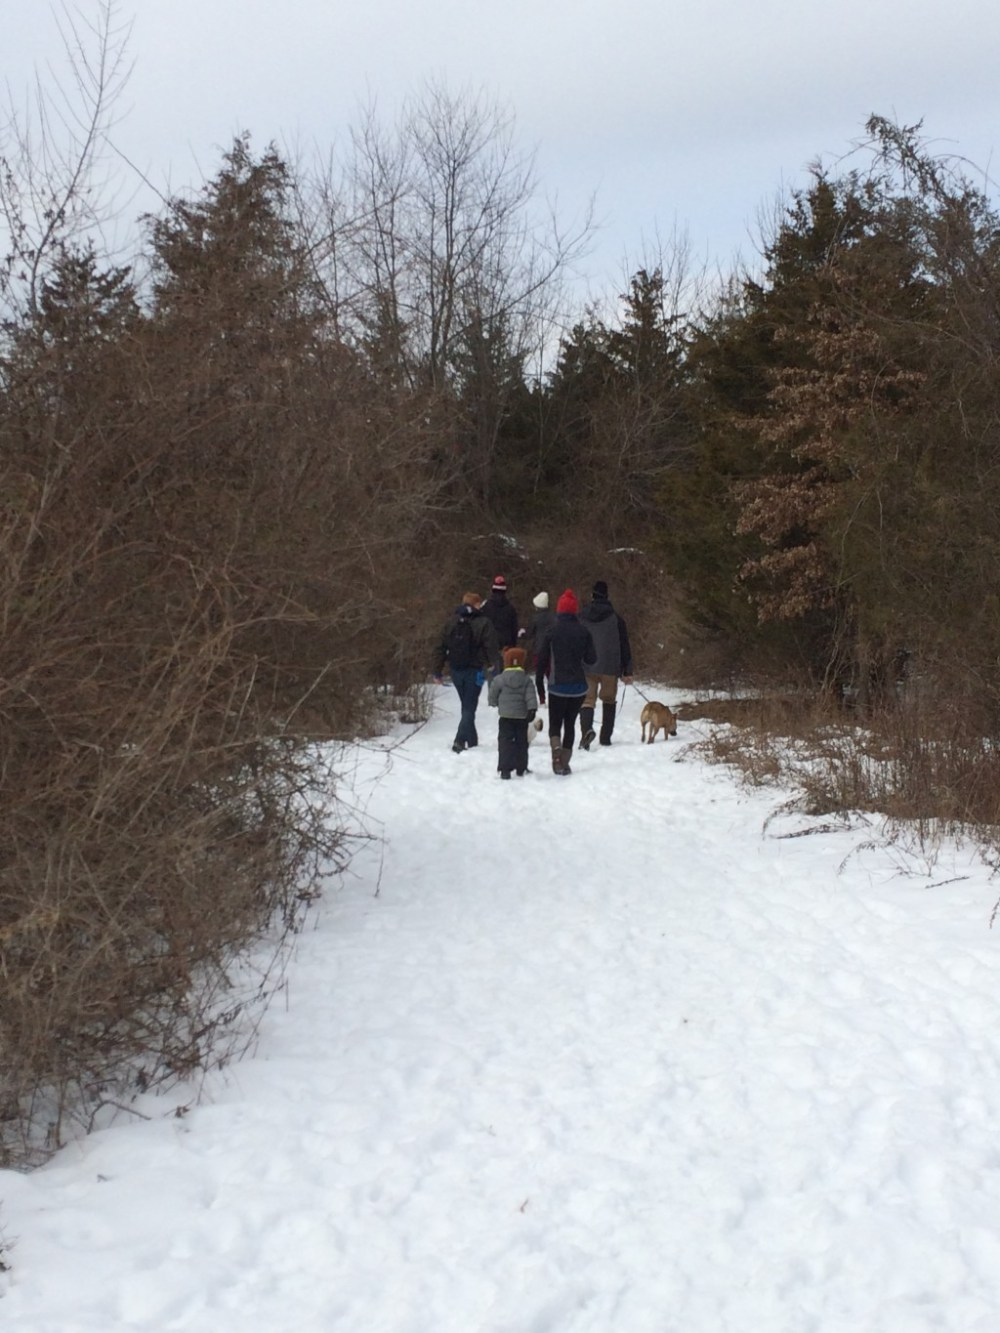 We went for a walk on the snowy arboretum trail.